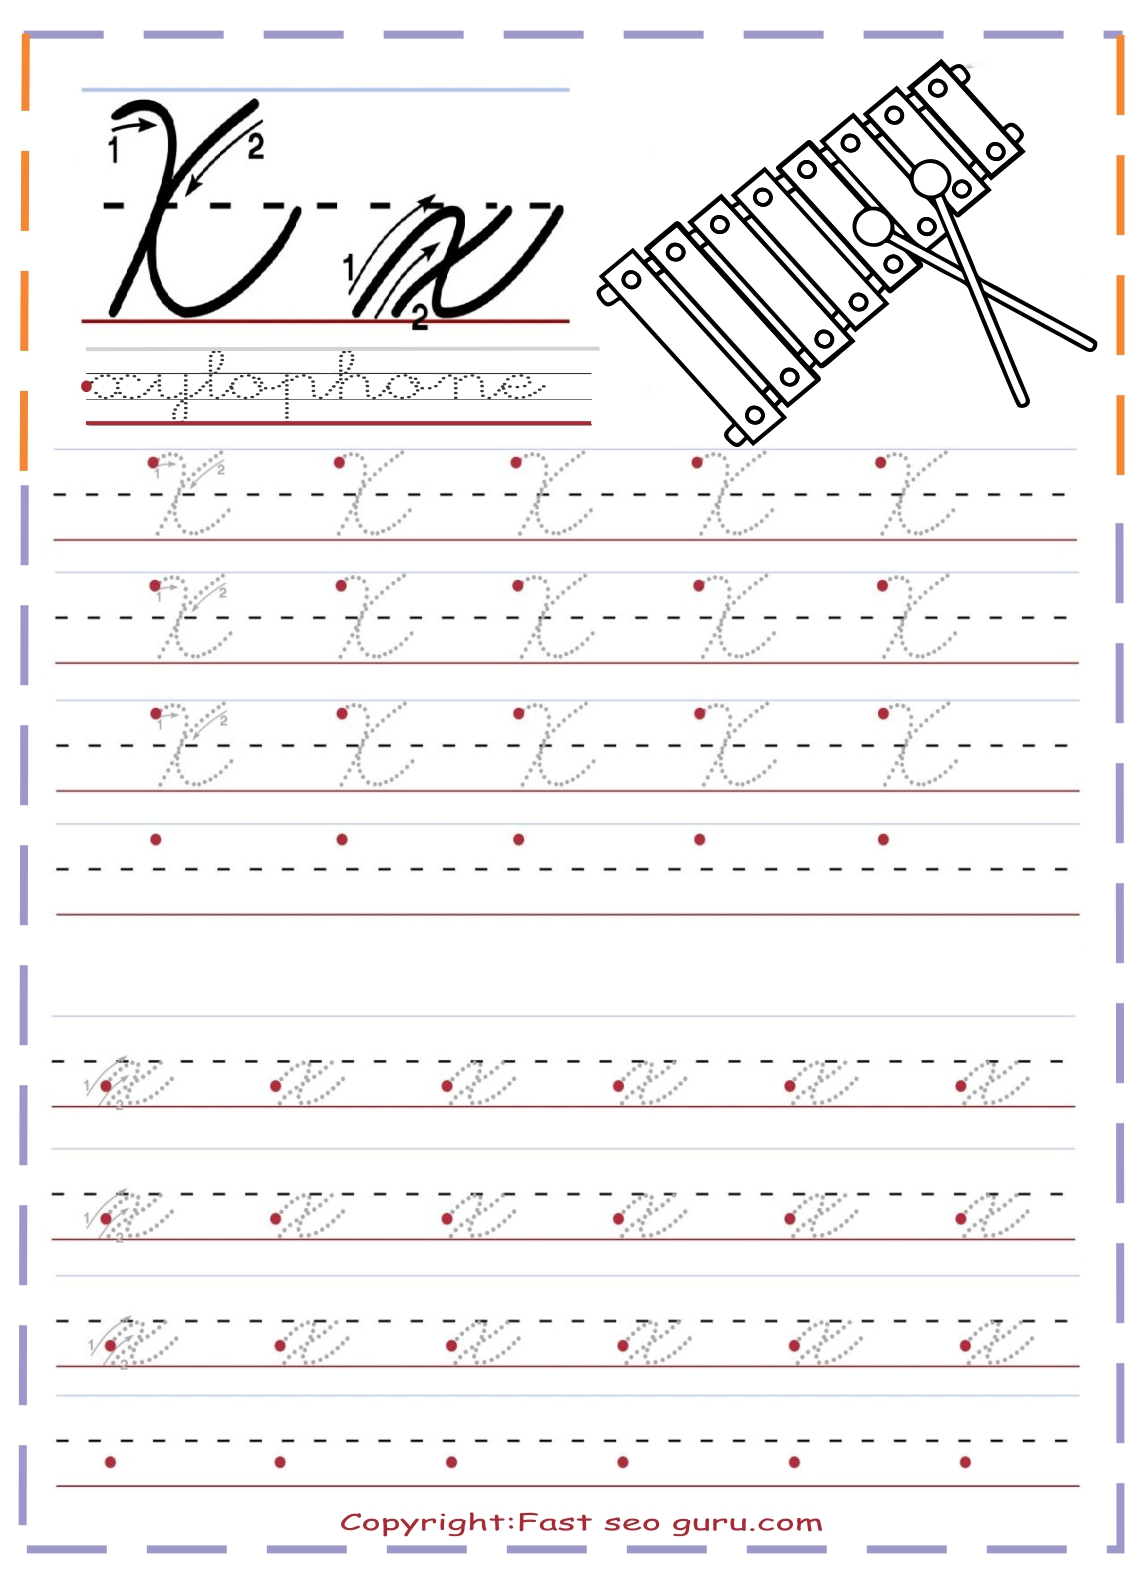 Cursive Handwriting Tracing Worksheets Letter X For Xylophone